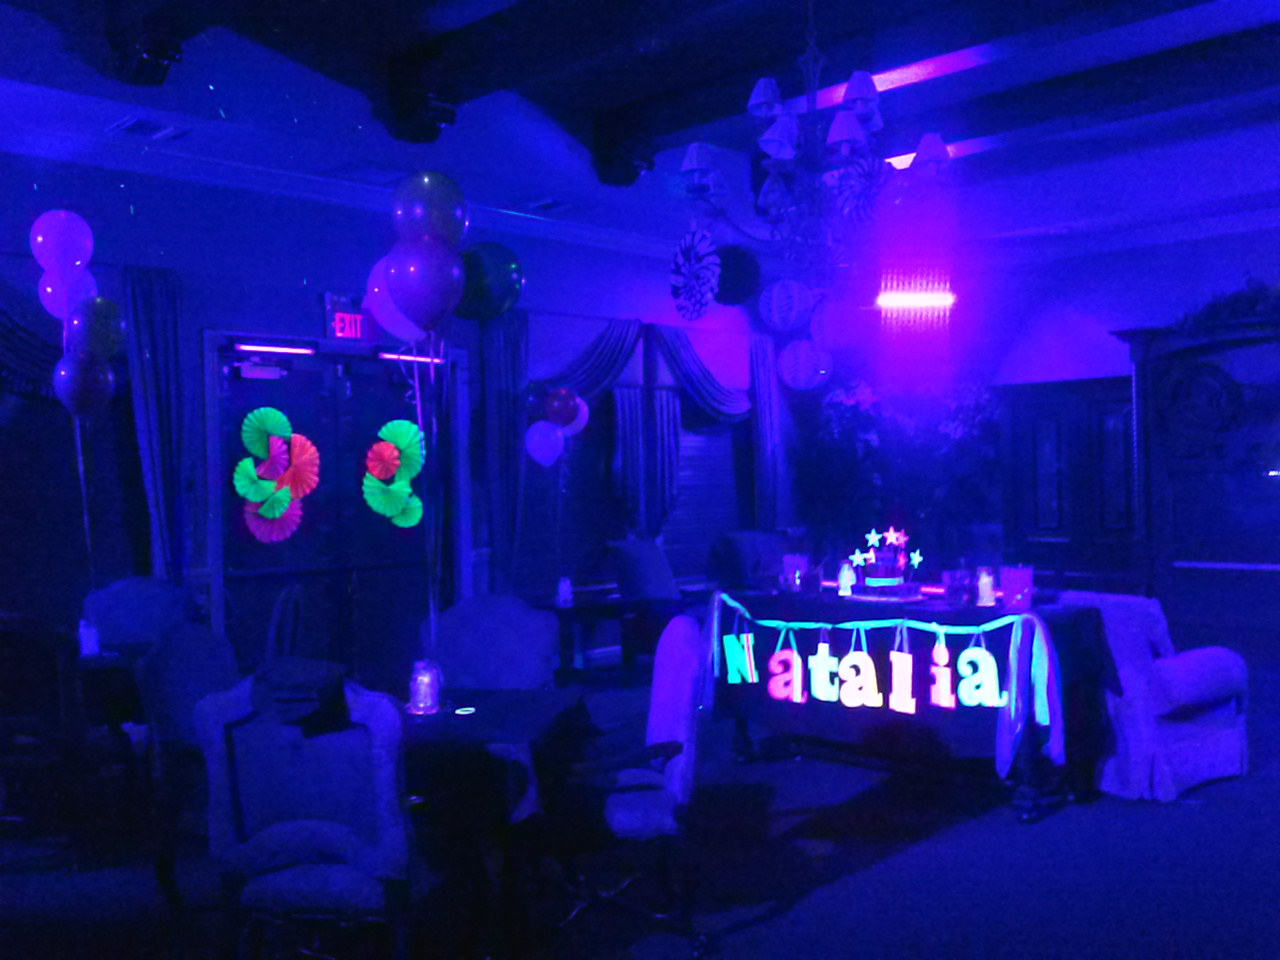 blacklight co i lighting my the impressive loved really neon it black this picture was how light in whirligigs even birthday glow lori and hi dark party m looked stuff sixteenth